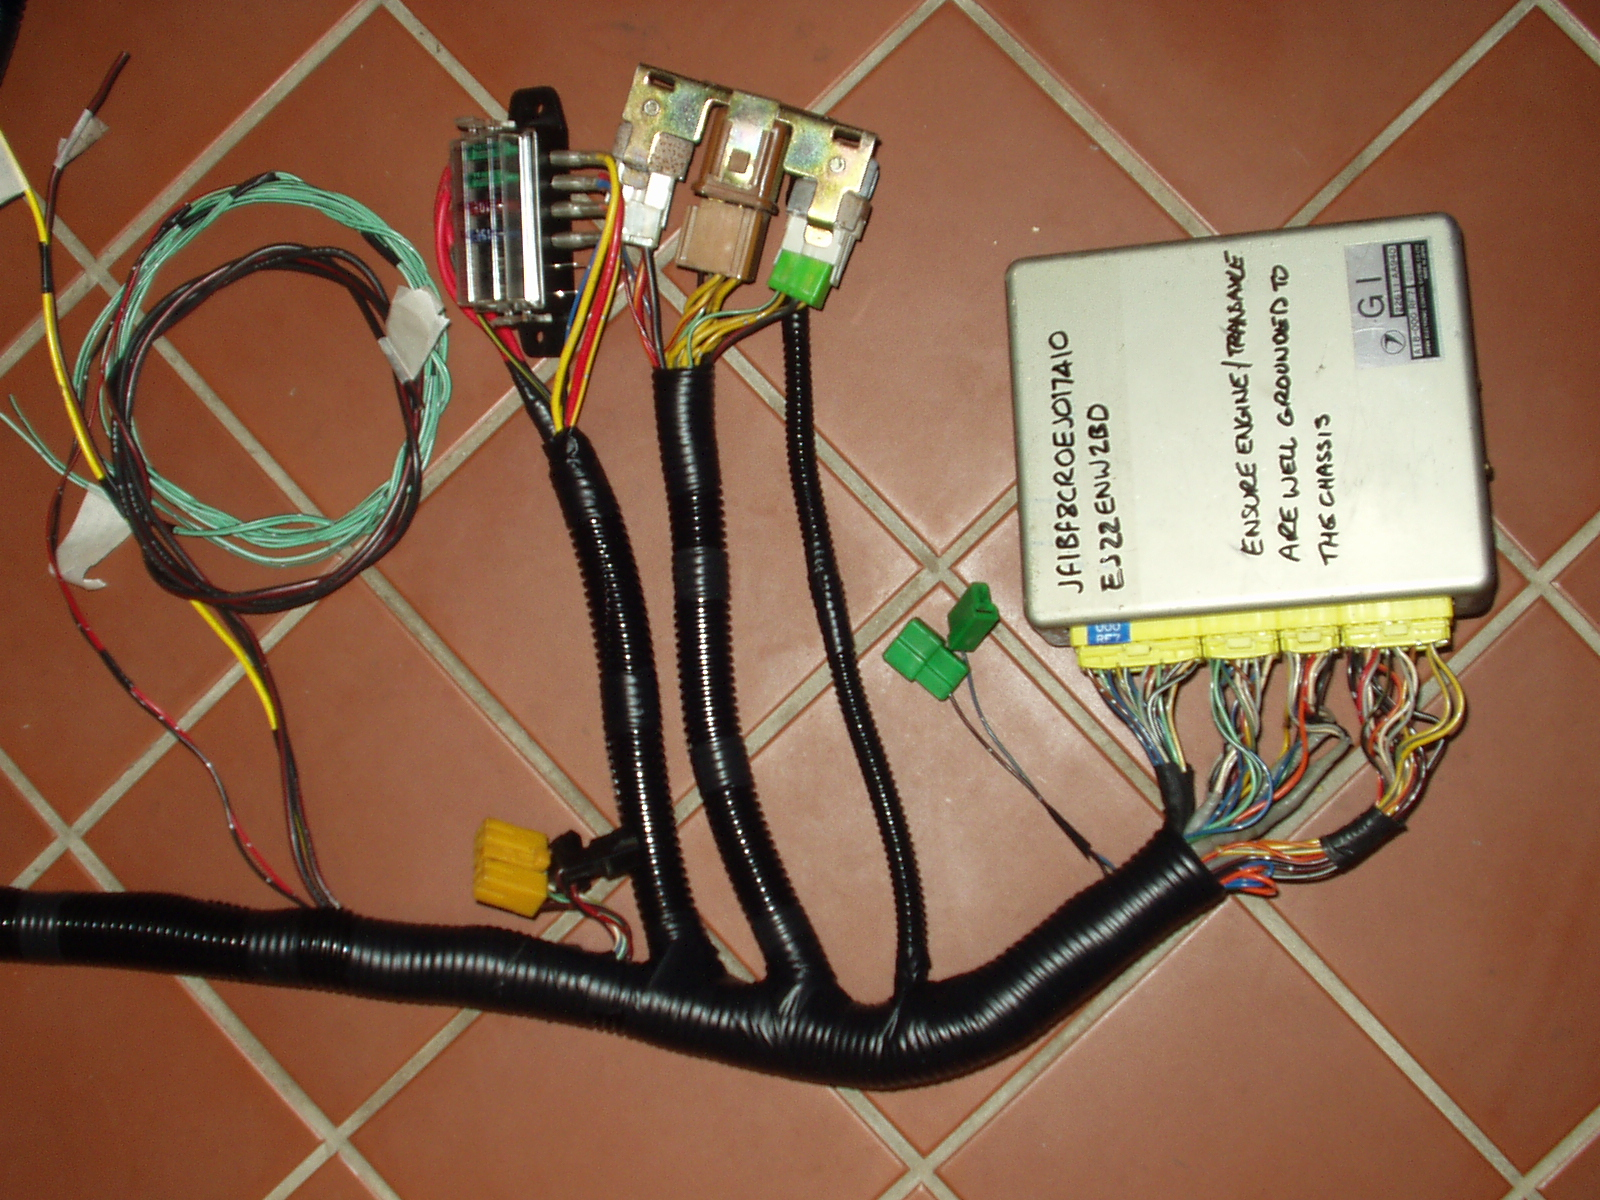 Wrx Wiring Harness Swap Opinions About Diagram Engine Building Rh Rjes Com 350z Corvette 6 0